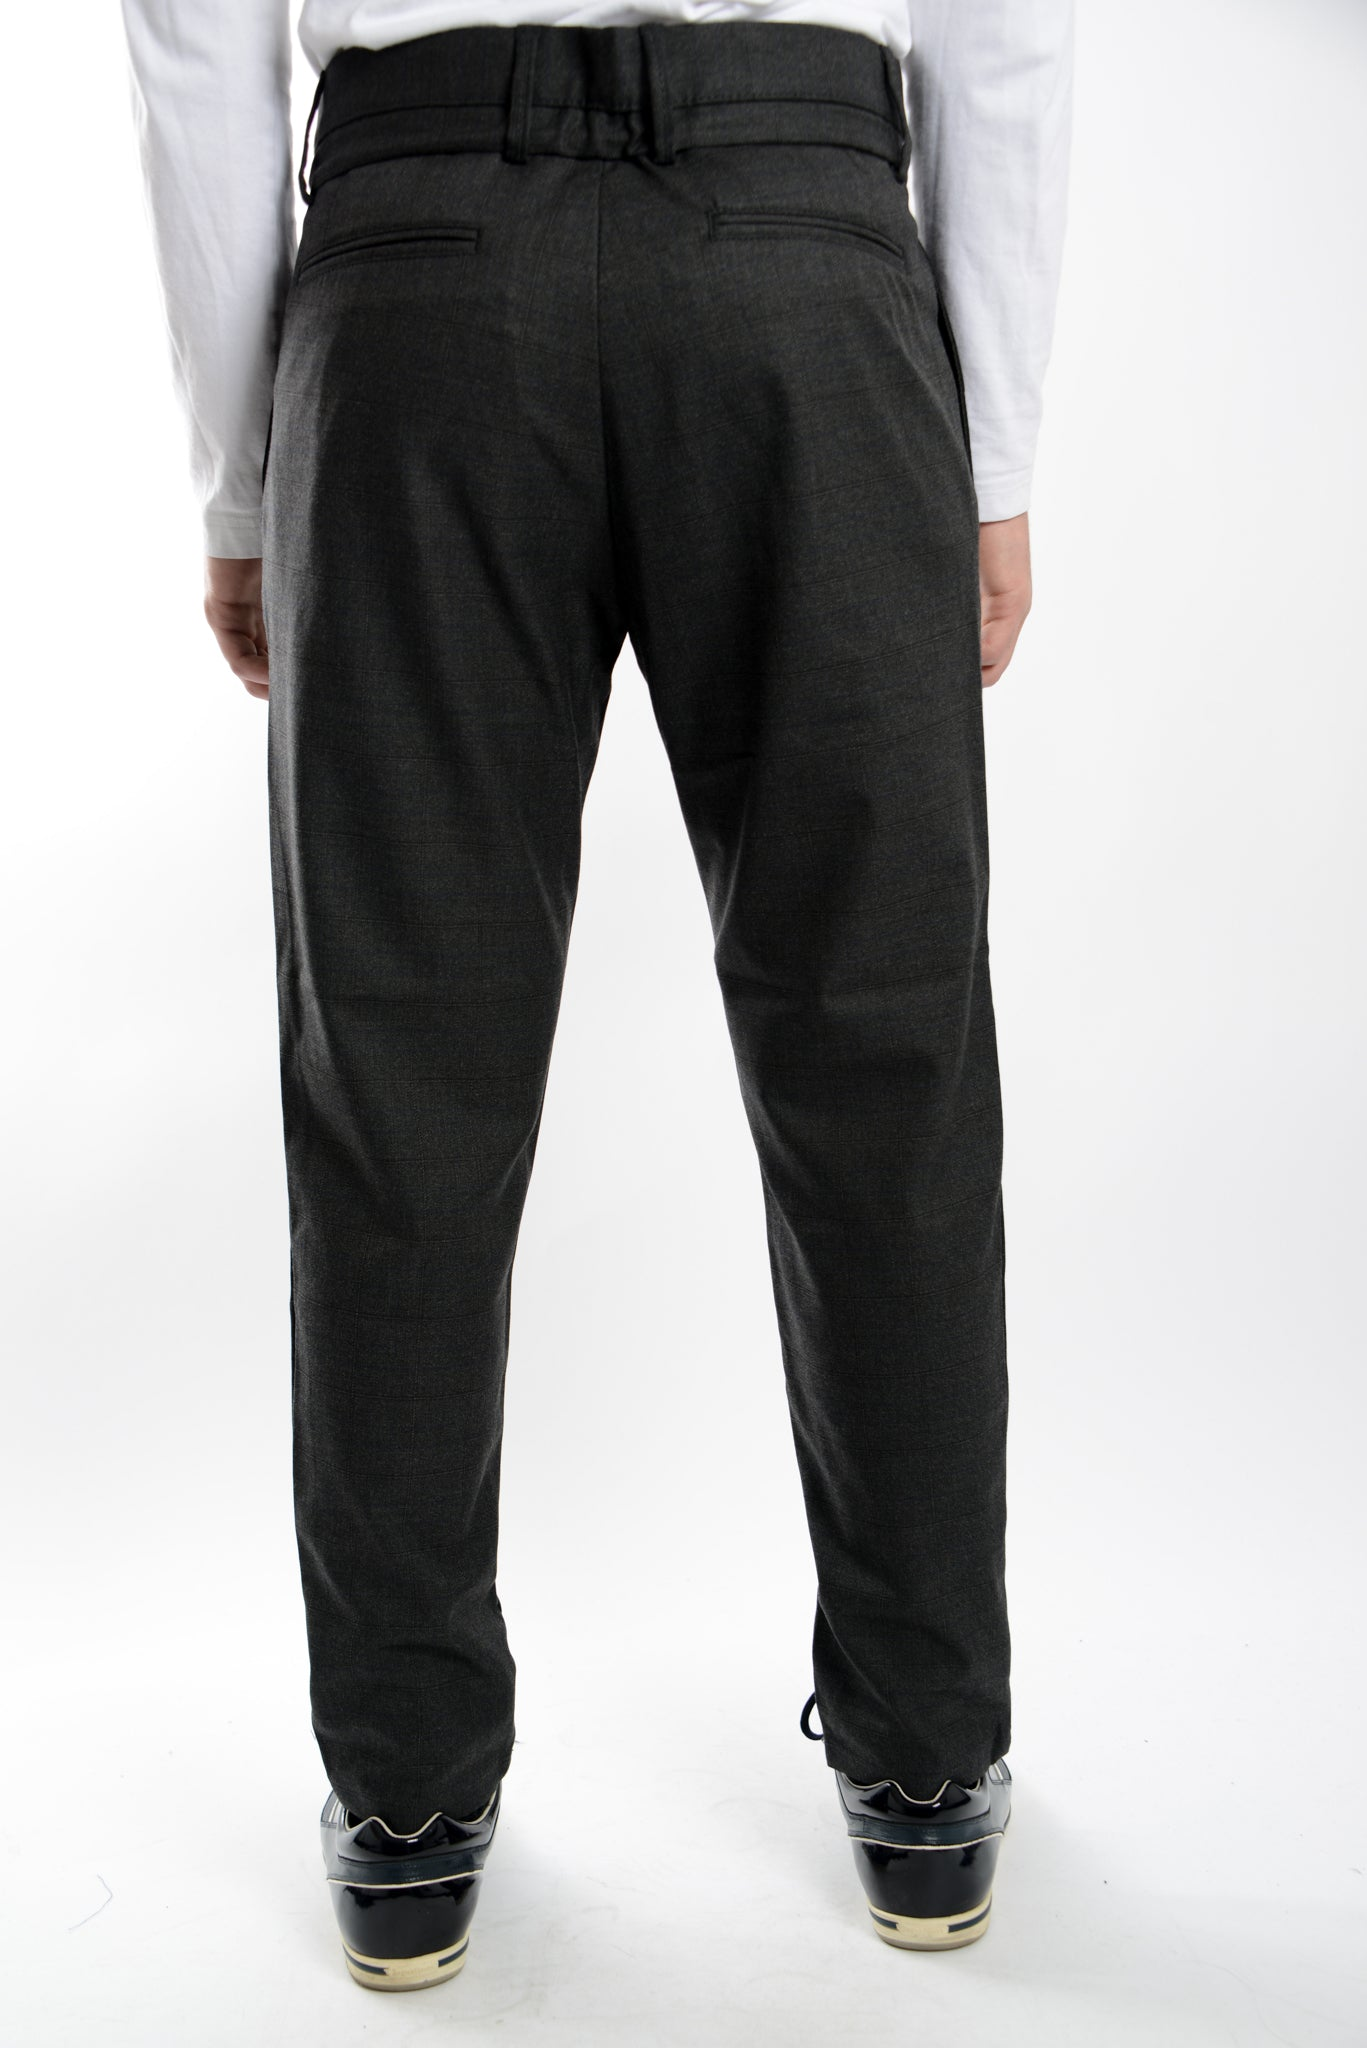 Z Euro Drawstring All Season Trouser